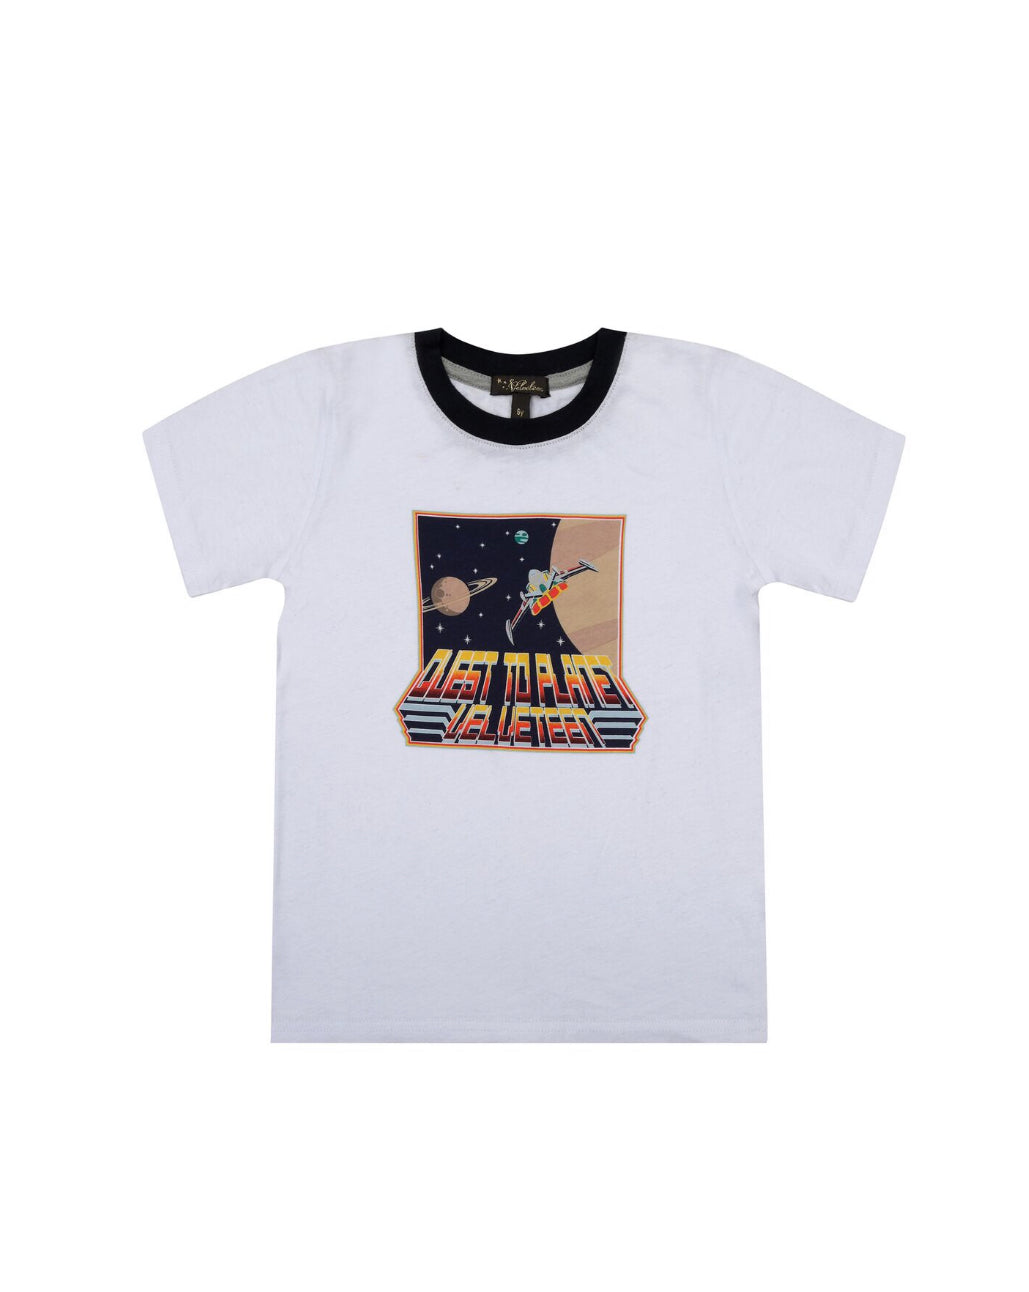 TRISTAN SHORT SLEEVE CREW NECK PLANET SHIRT - Sayings Kids